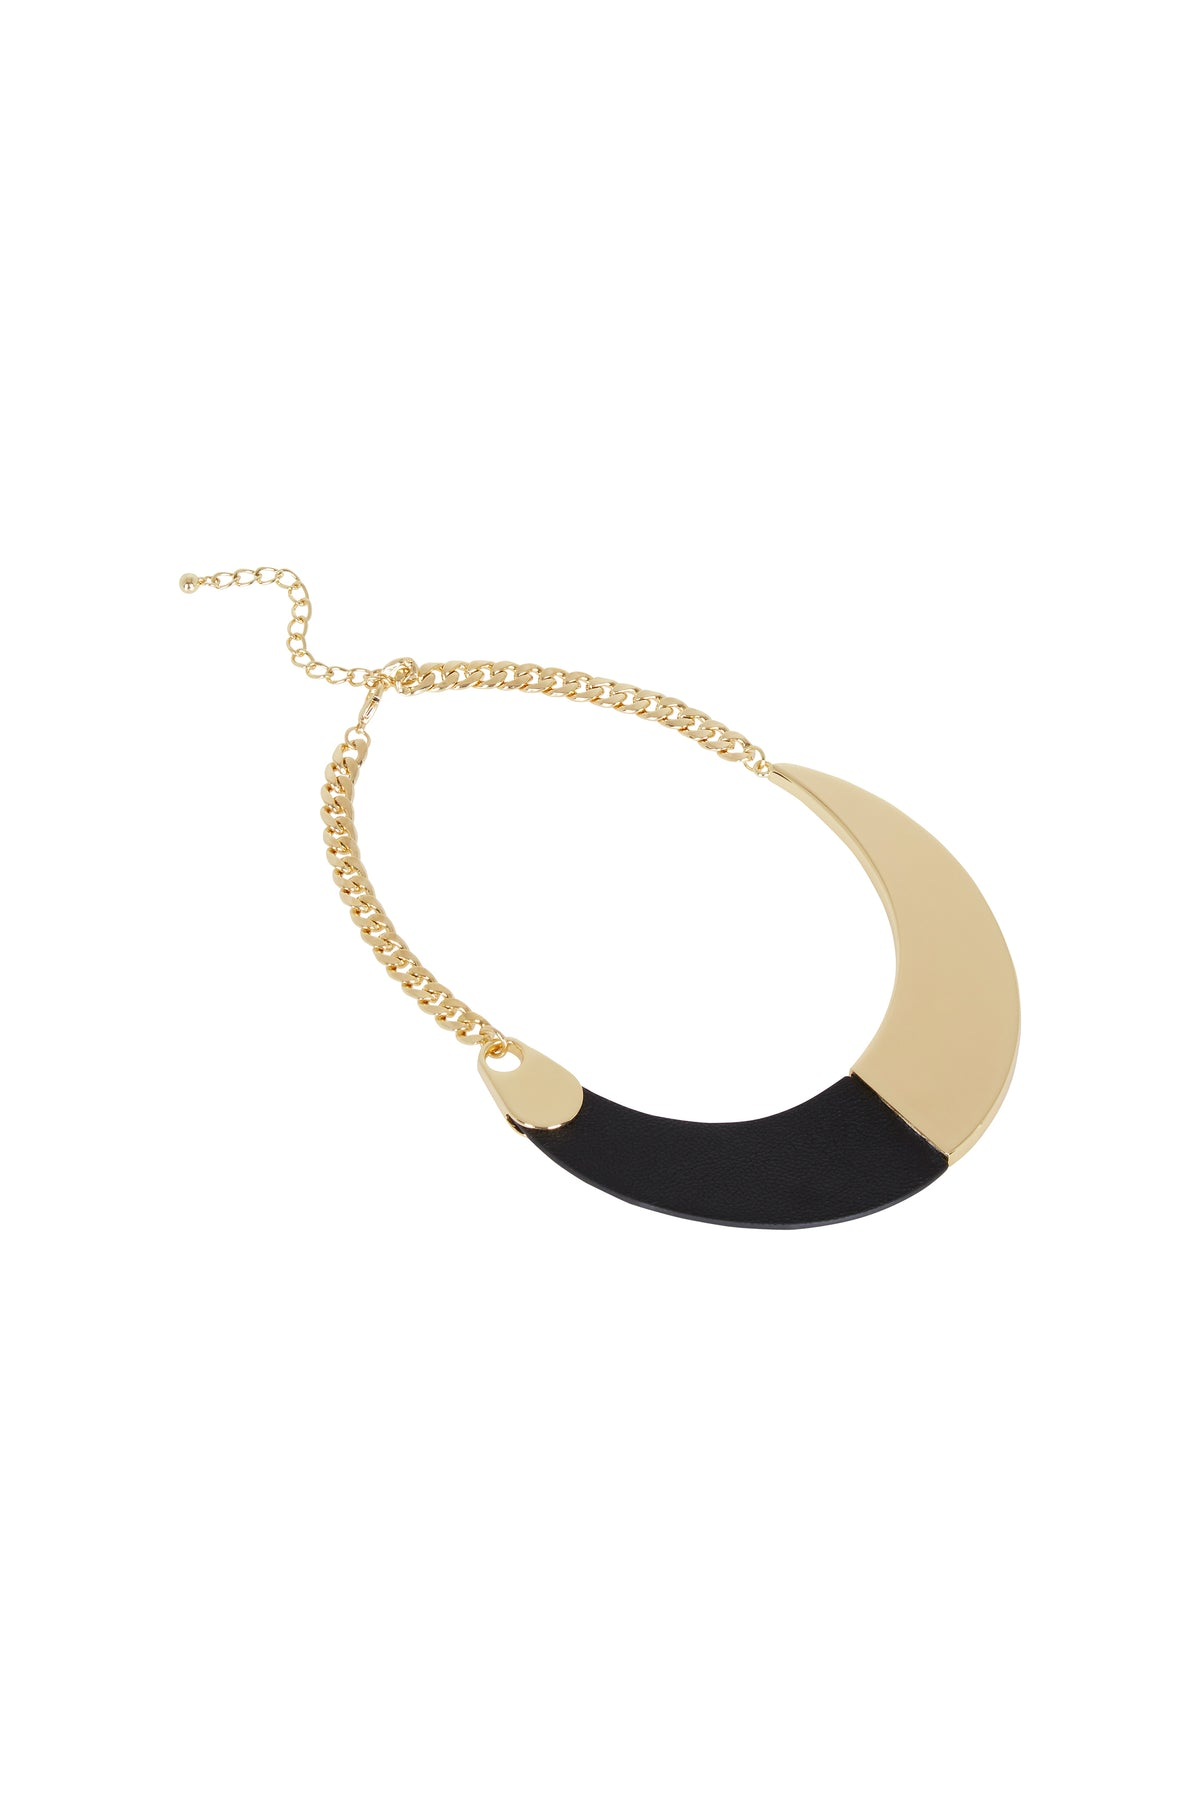 CARLIE LEATHER/GOLD NECKLACE